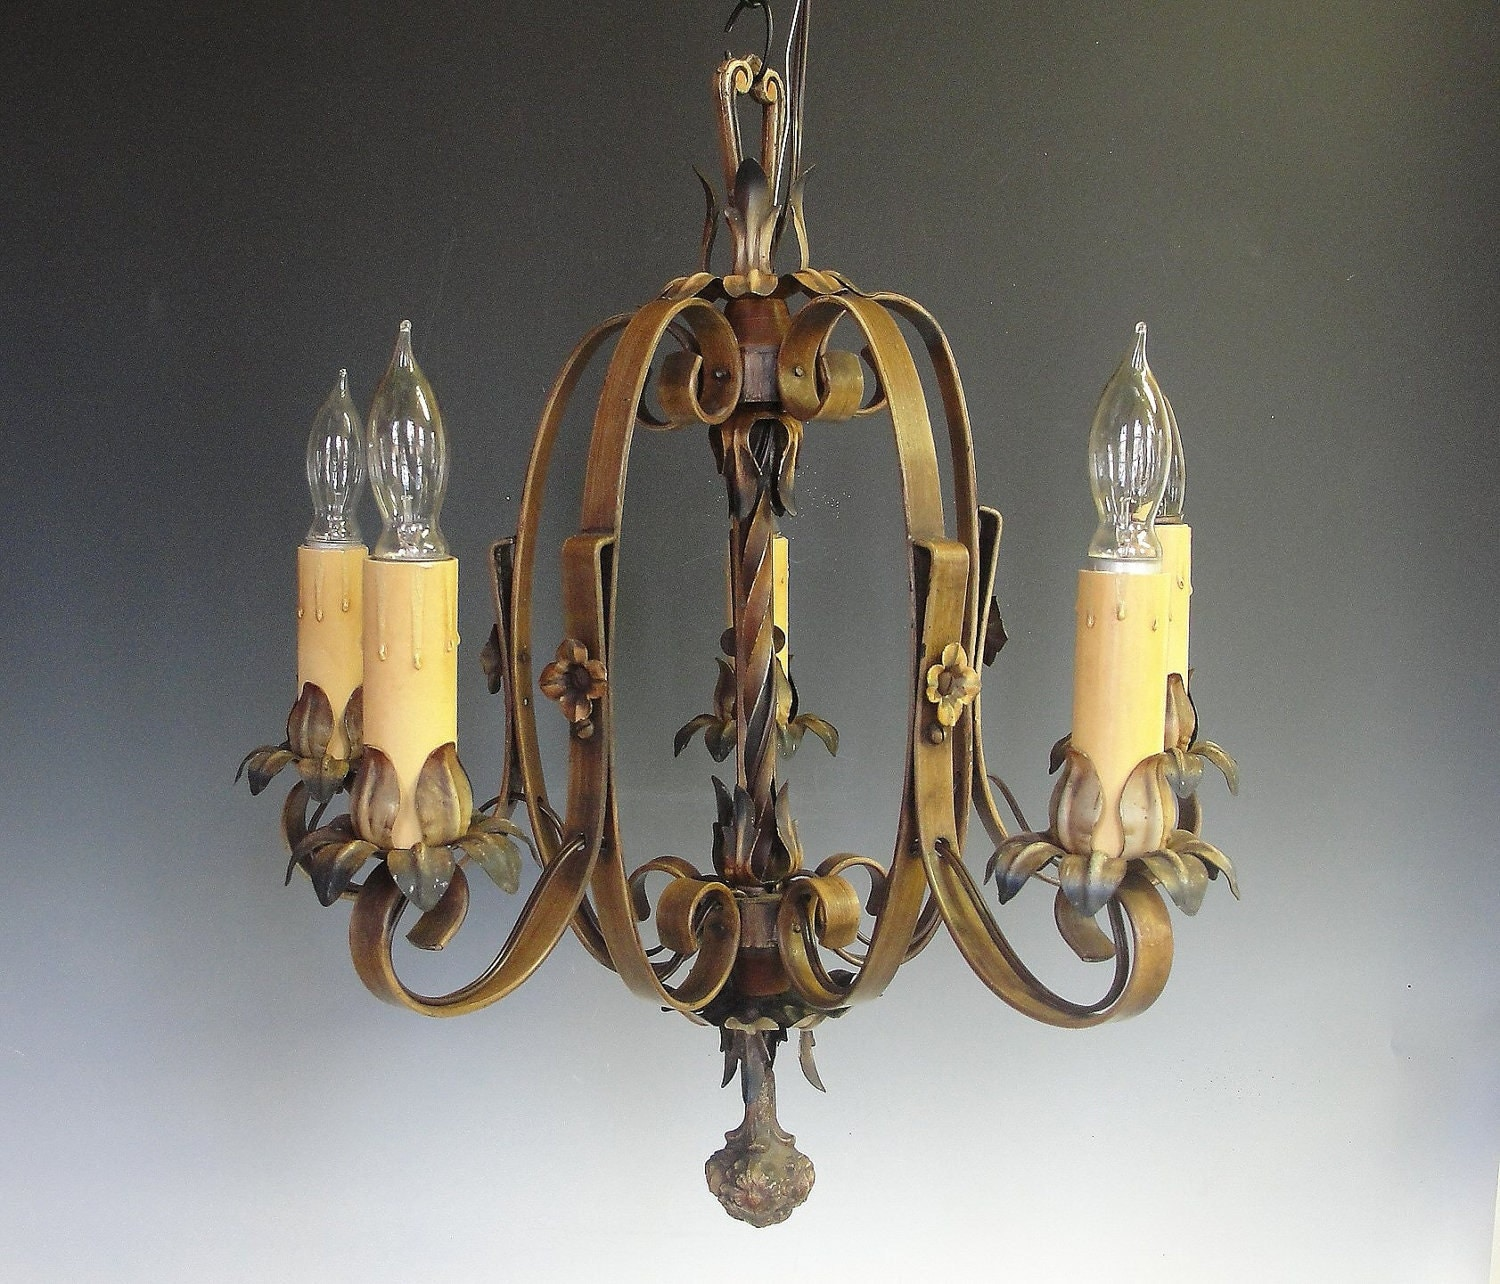 Antique lighting free shipping in us vintage lighting - Light fixtures chandeliers ...